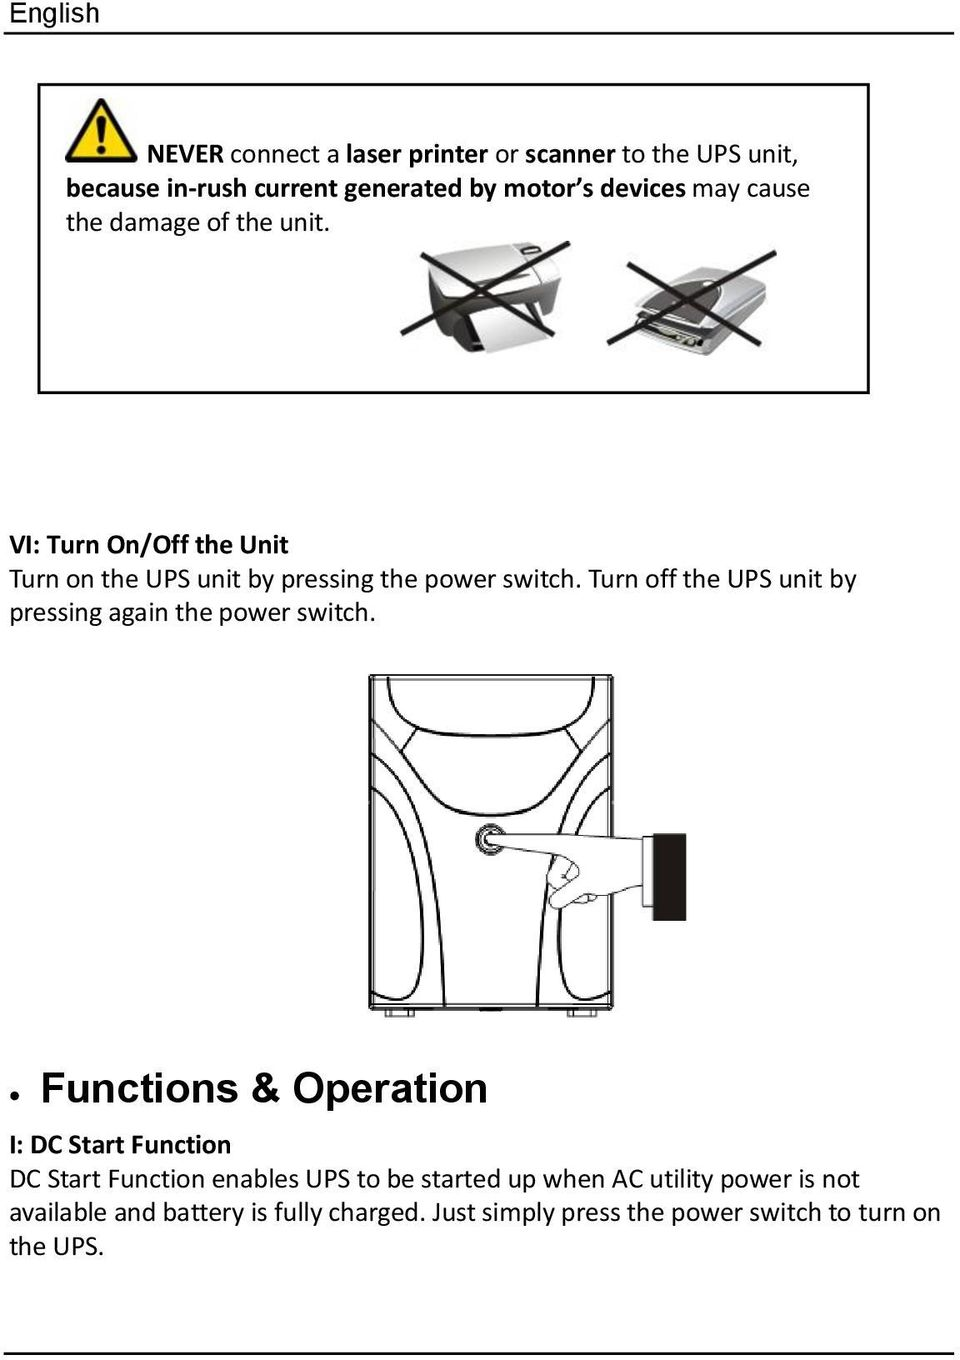 Turn off the UPS unit by pressing again the power switch.